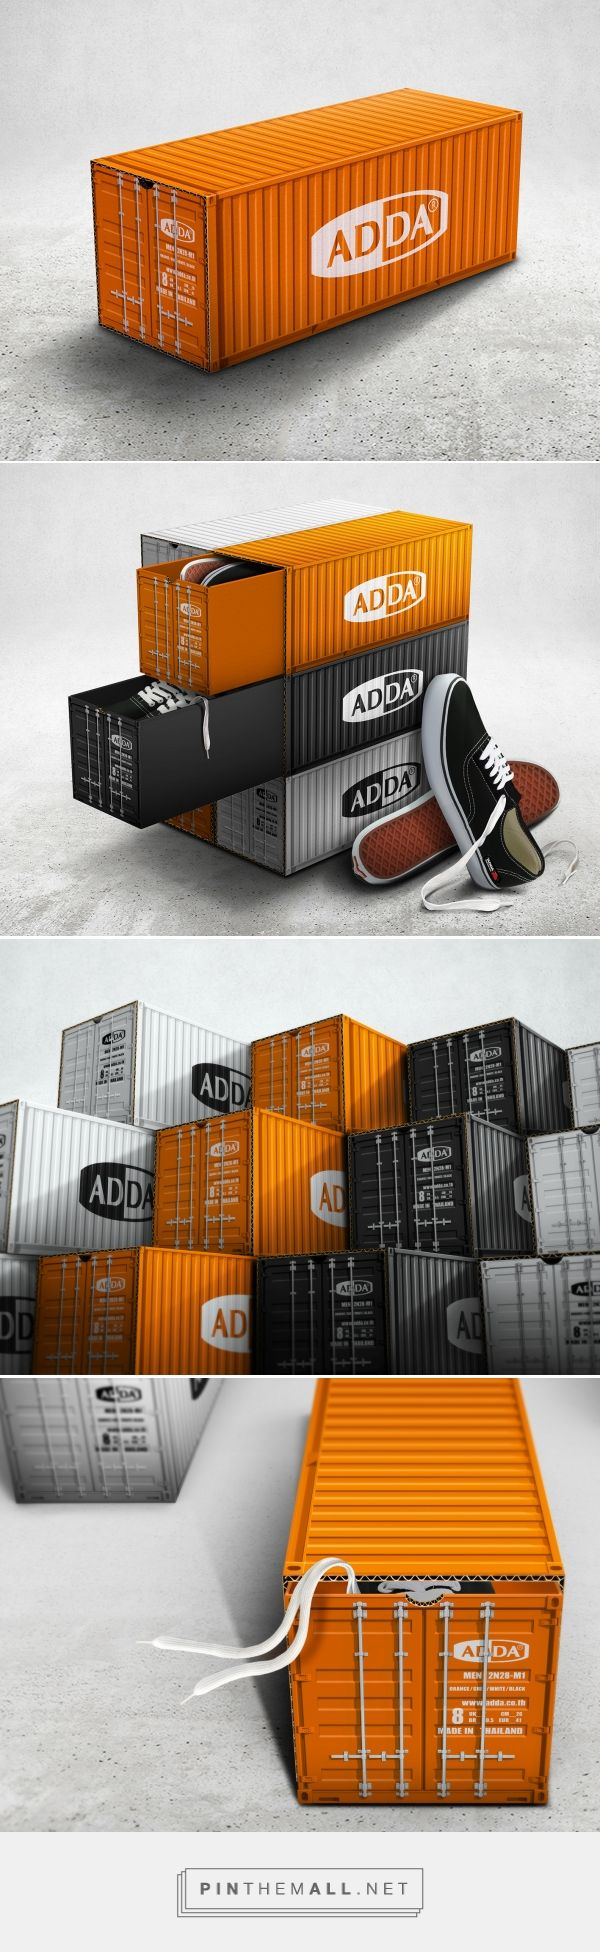 Adda Container Shoe Box packaging design by Prompt Design - http://www.packagingoftheworld.com/2017/07/adda-container-shoe-box.html